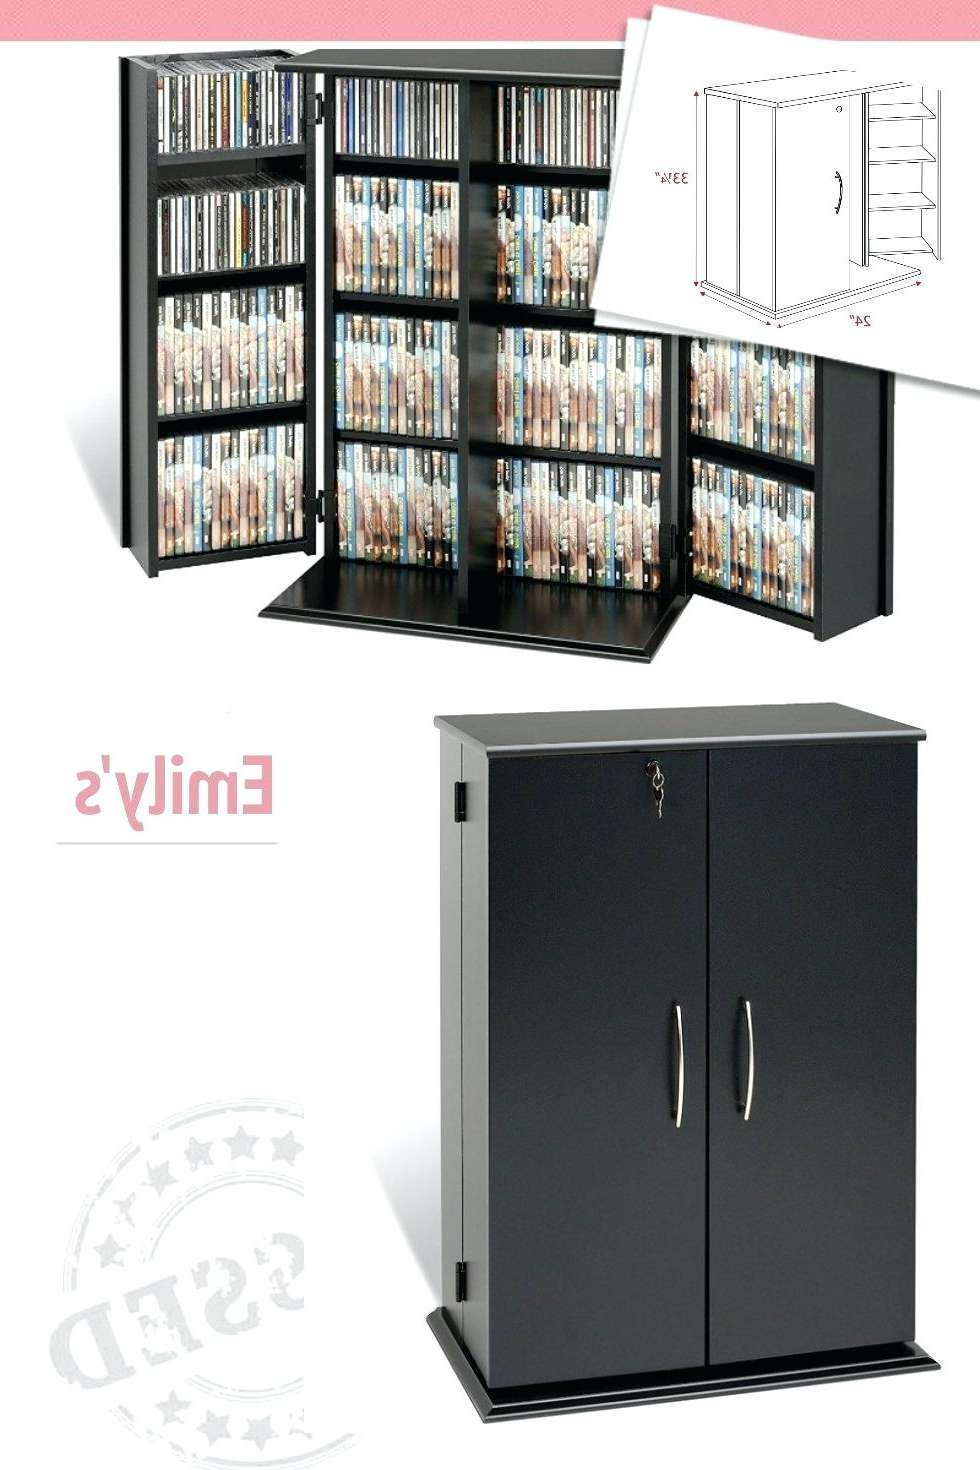 Media Storage Cabinet Walmart Modern Tv Stand Black White Target With Lockable Tv Stands (View 16 of 20)